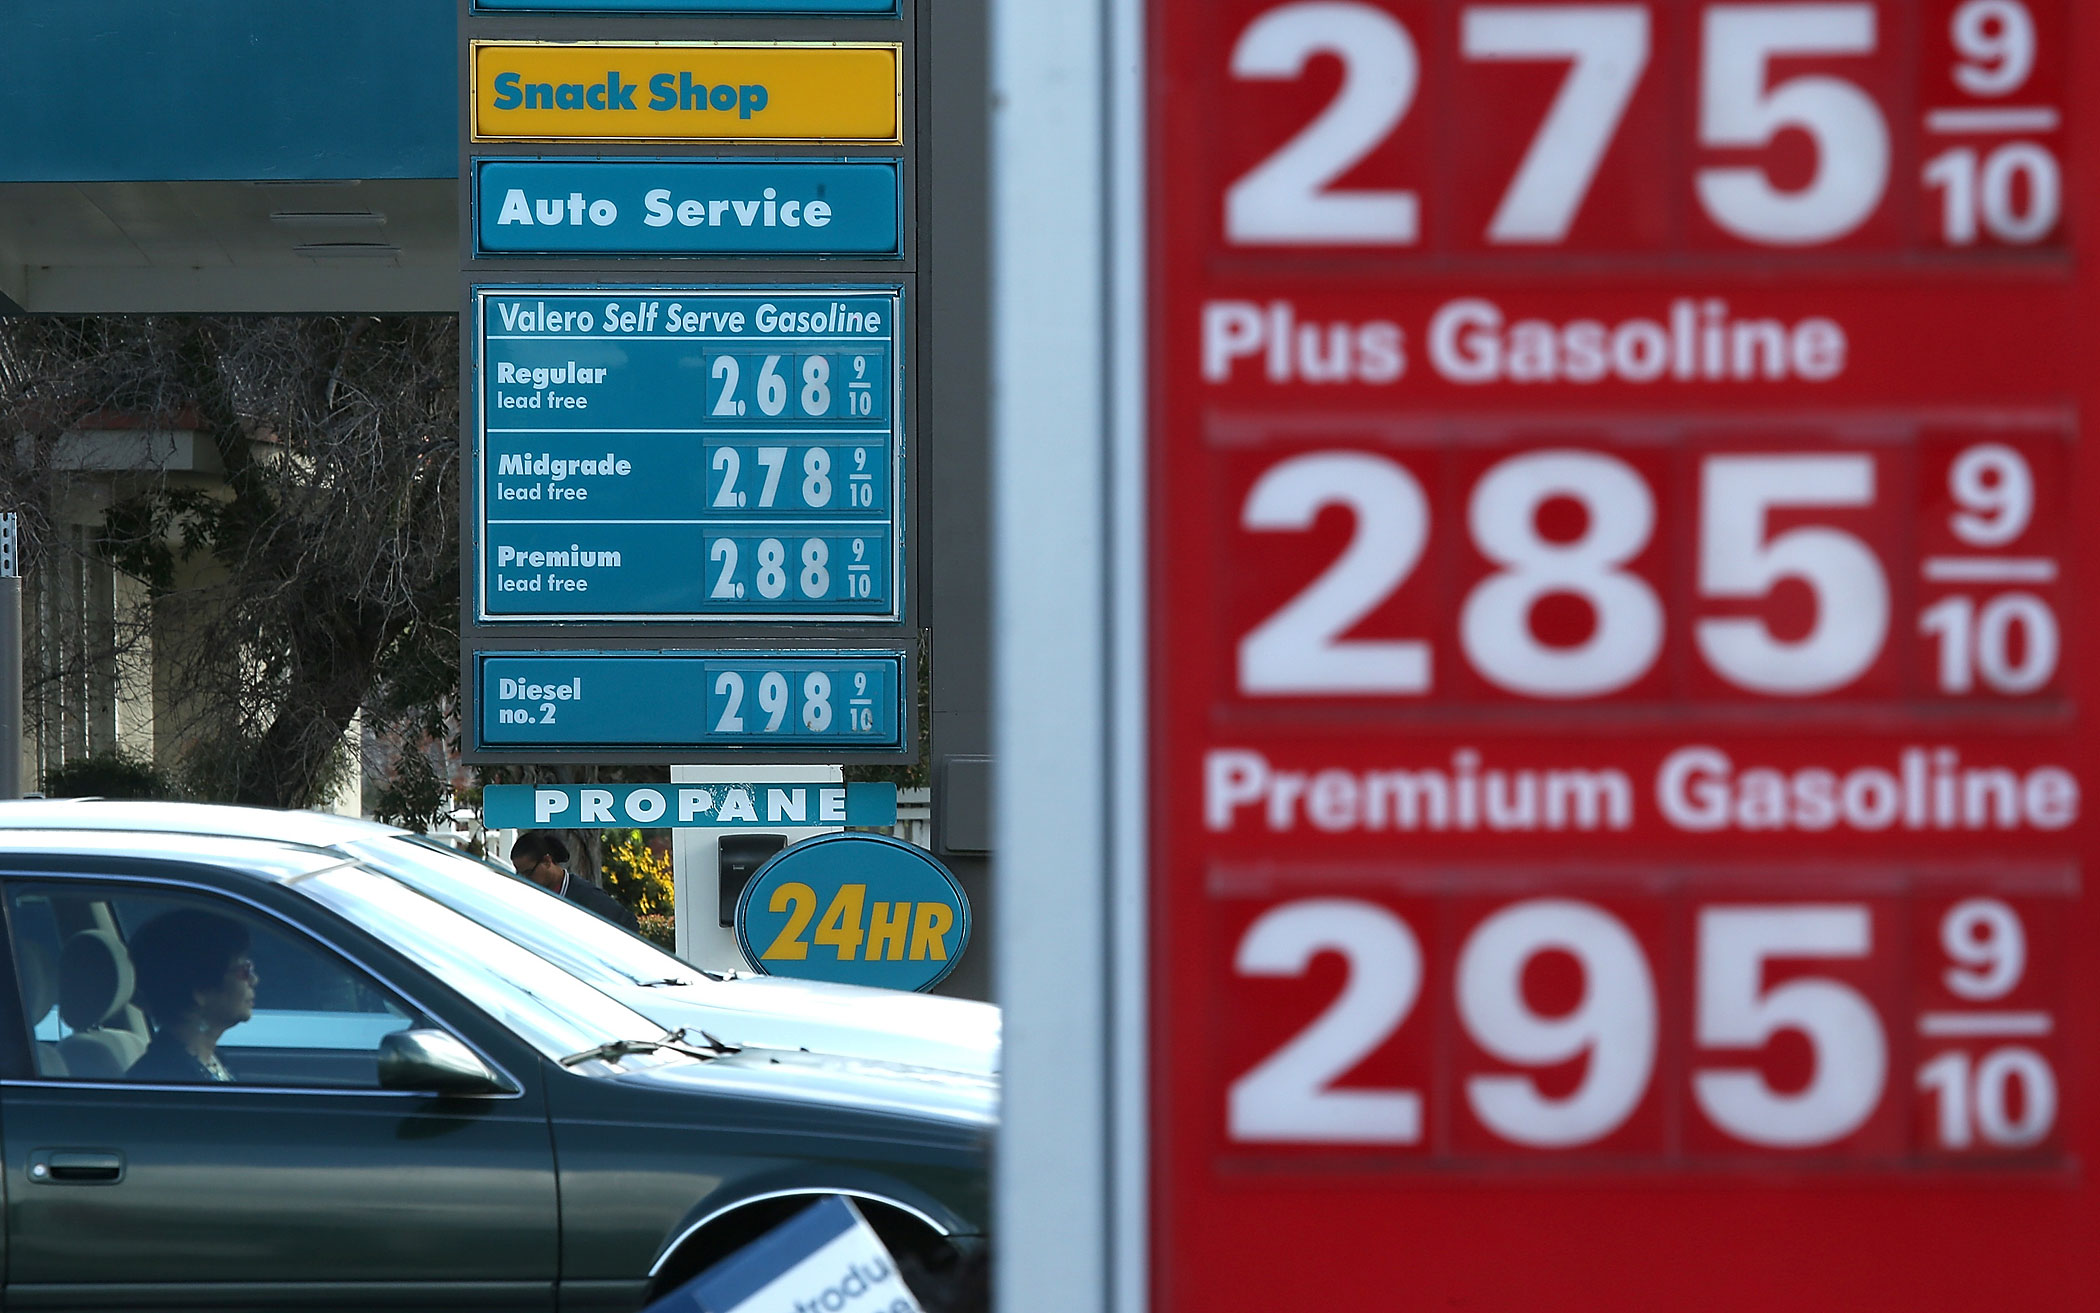 Drivers pass by gas prices that are displayed at Valero and 76 gas stations on Feb. 9, 2015 in San Rafael, Calif.